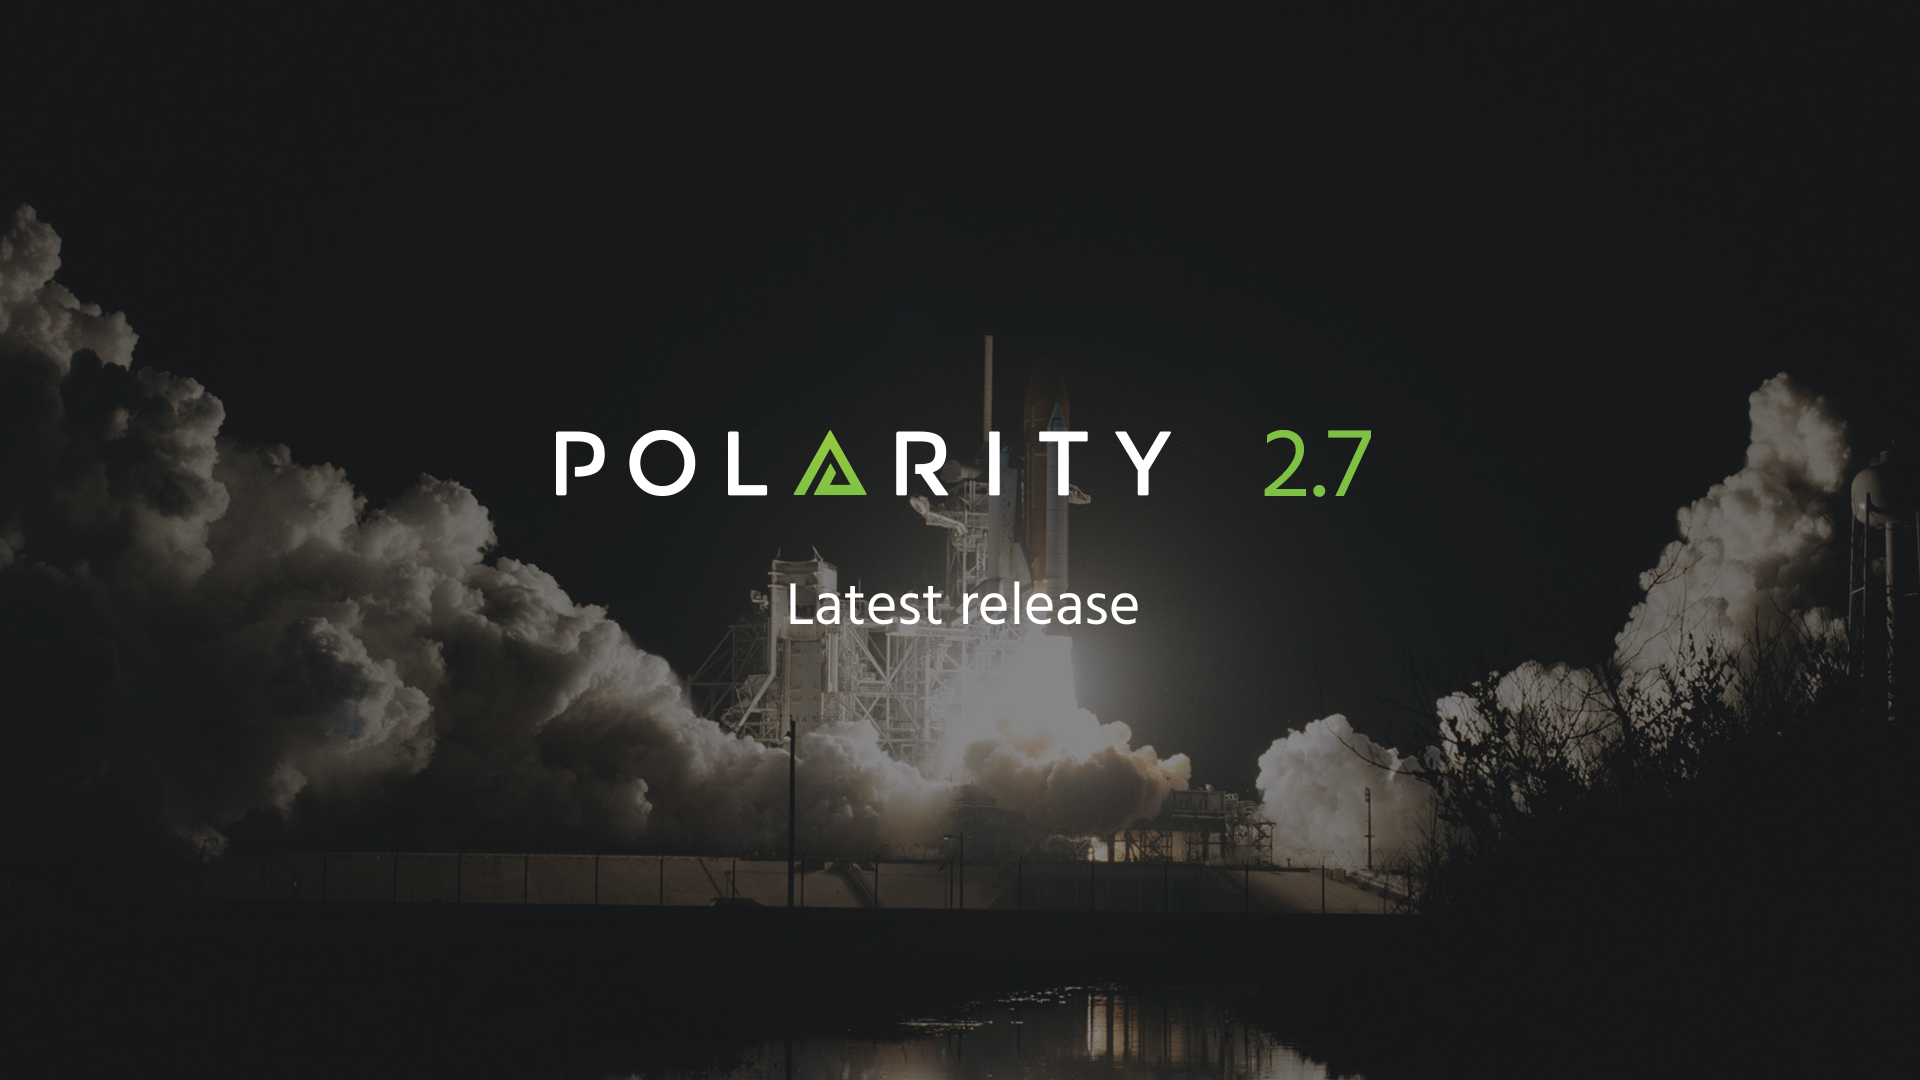 Our Latest Release - Polarity 2.7 cover image